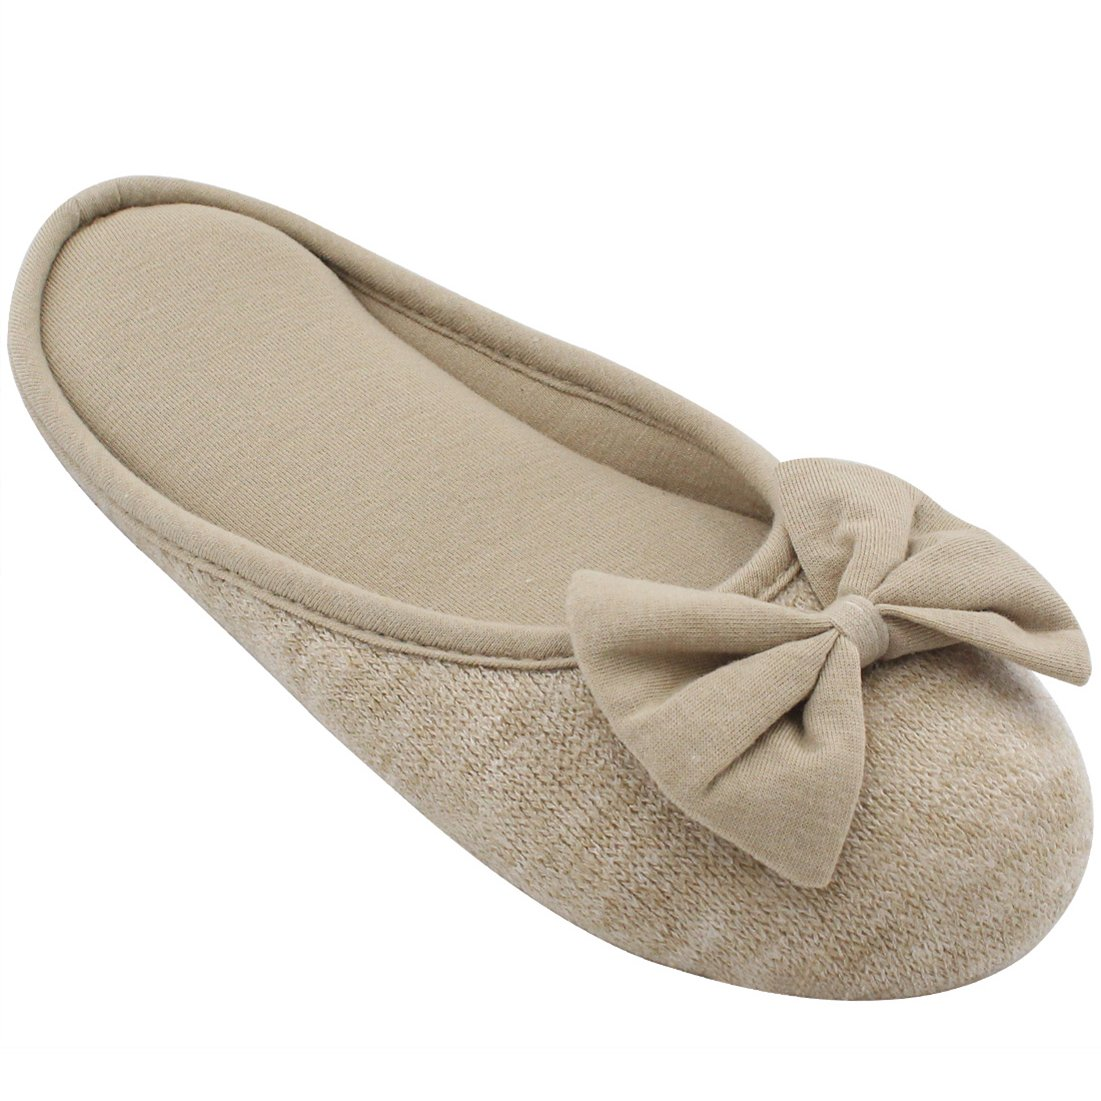 HomeTop Women's Cozy Cashmere Cotton Closed Toe House Slippers with Cute Bow Accent (Large / 9-10 B(M) US, Beige)